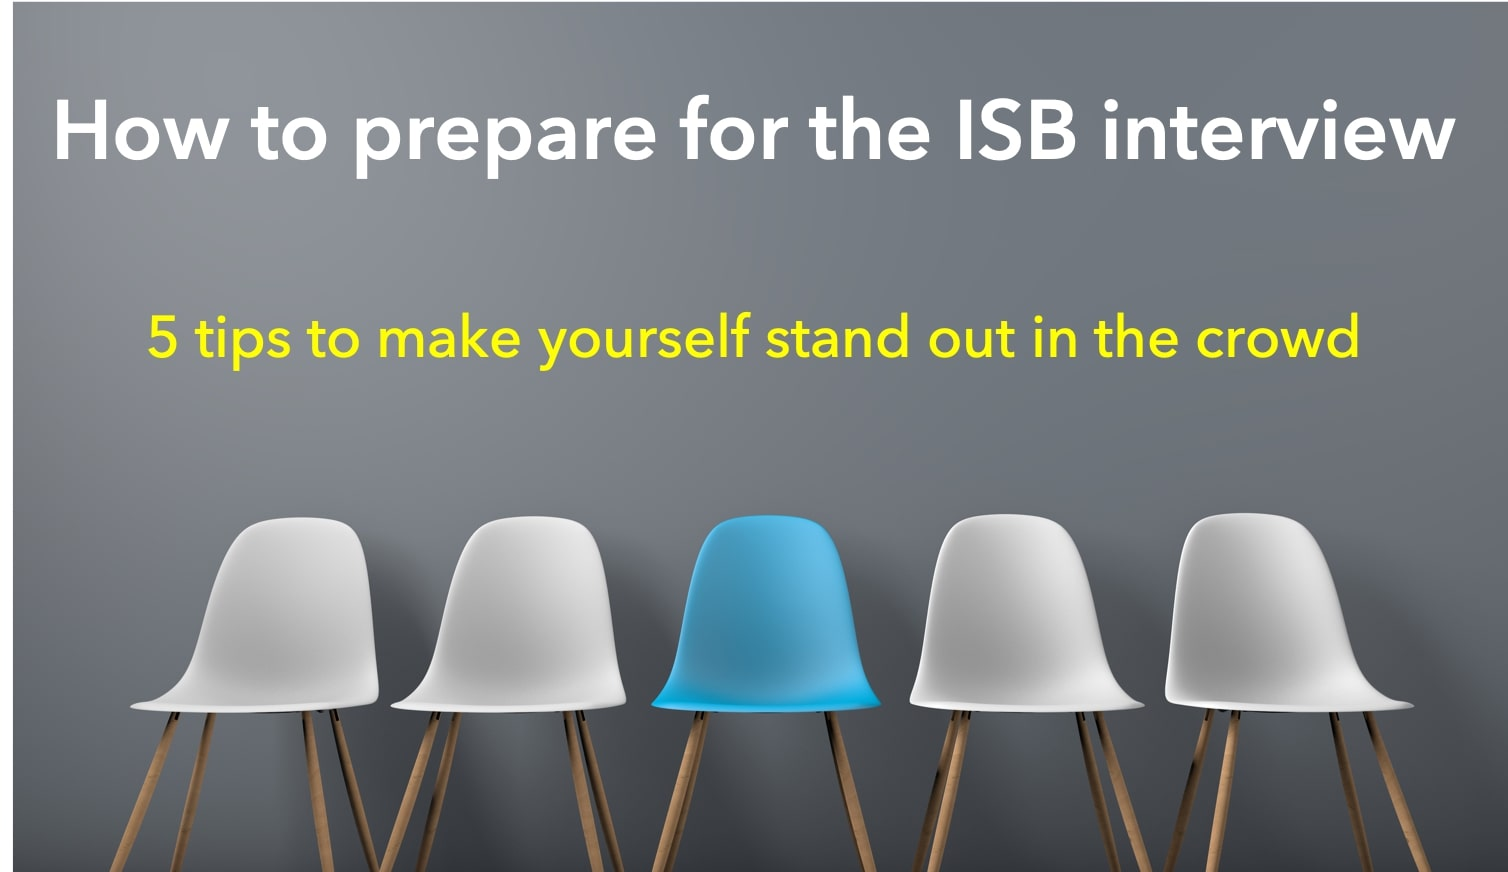 How to prepare for ISB interview